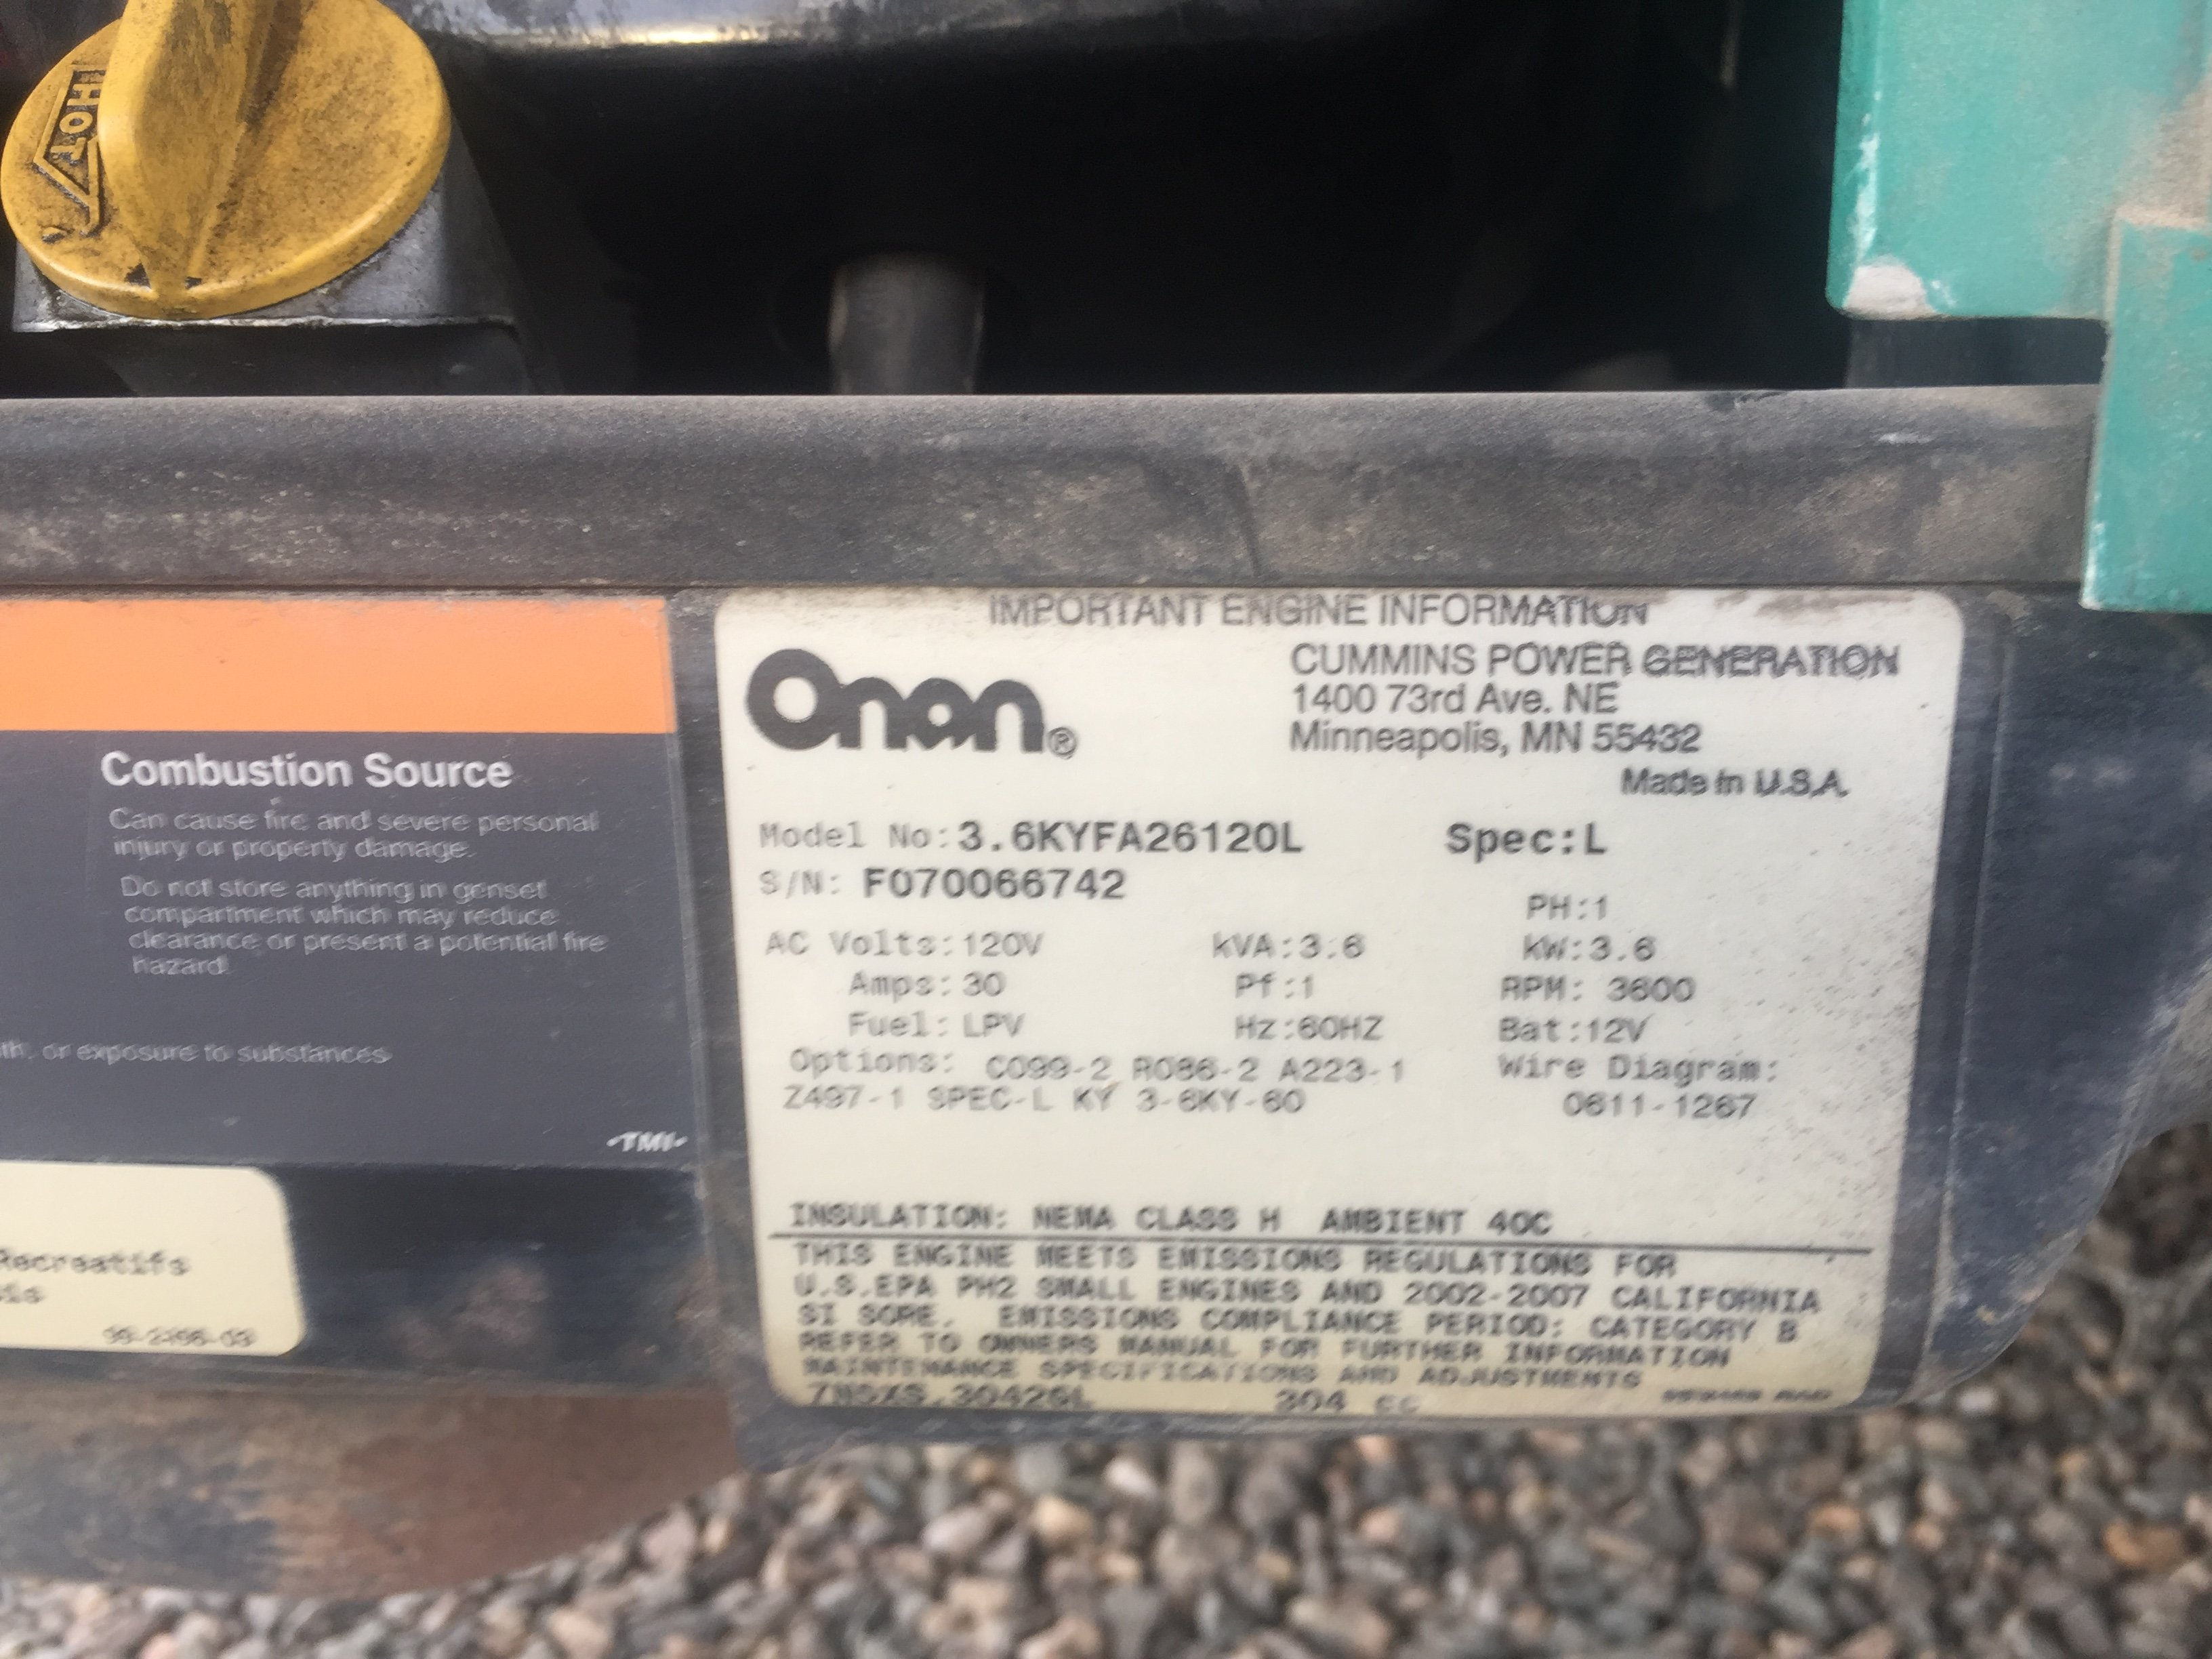 I Have 36kyfa26120l And Was Determined The Regulator Needs Replaced Onan Small Engine Wiring Diagram 73d46287 B966 4944 Afa8jpeg73d462jpeg